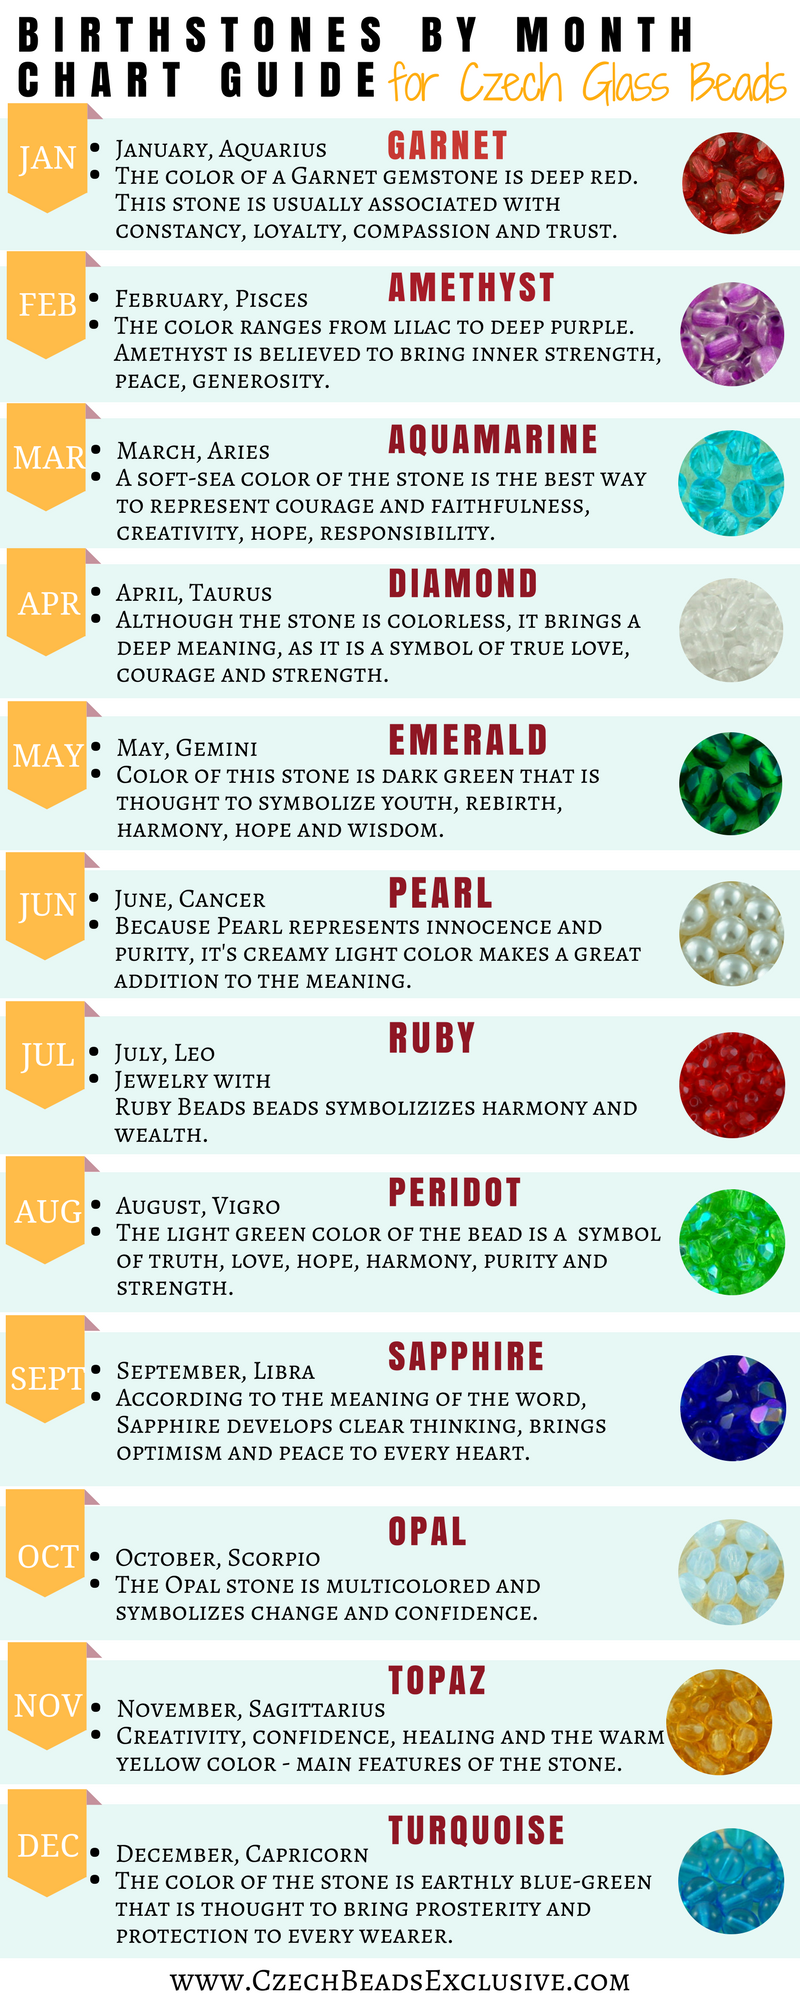 Birthstones By Month Chart Guide For Czech Glass Beads And Other Beading Supplies Birthstones By Month Czech Glass Beads Birthstones